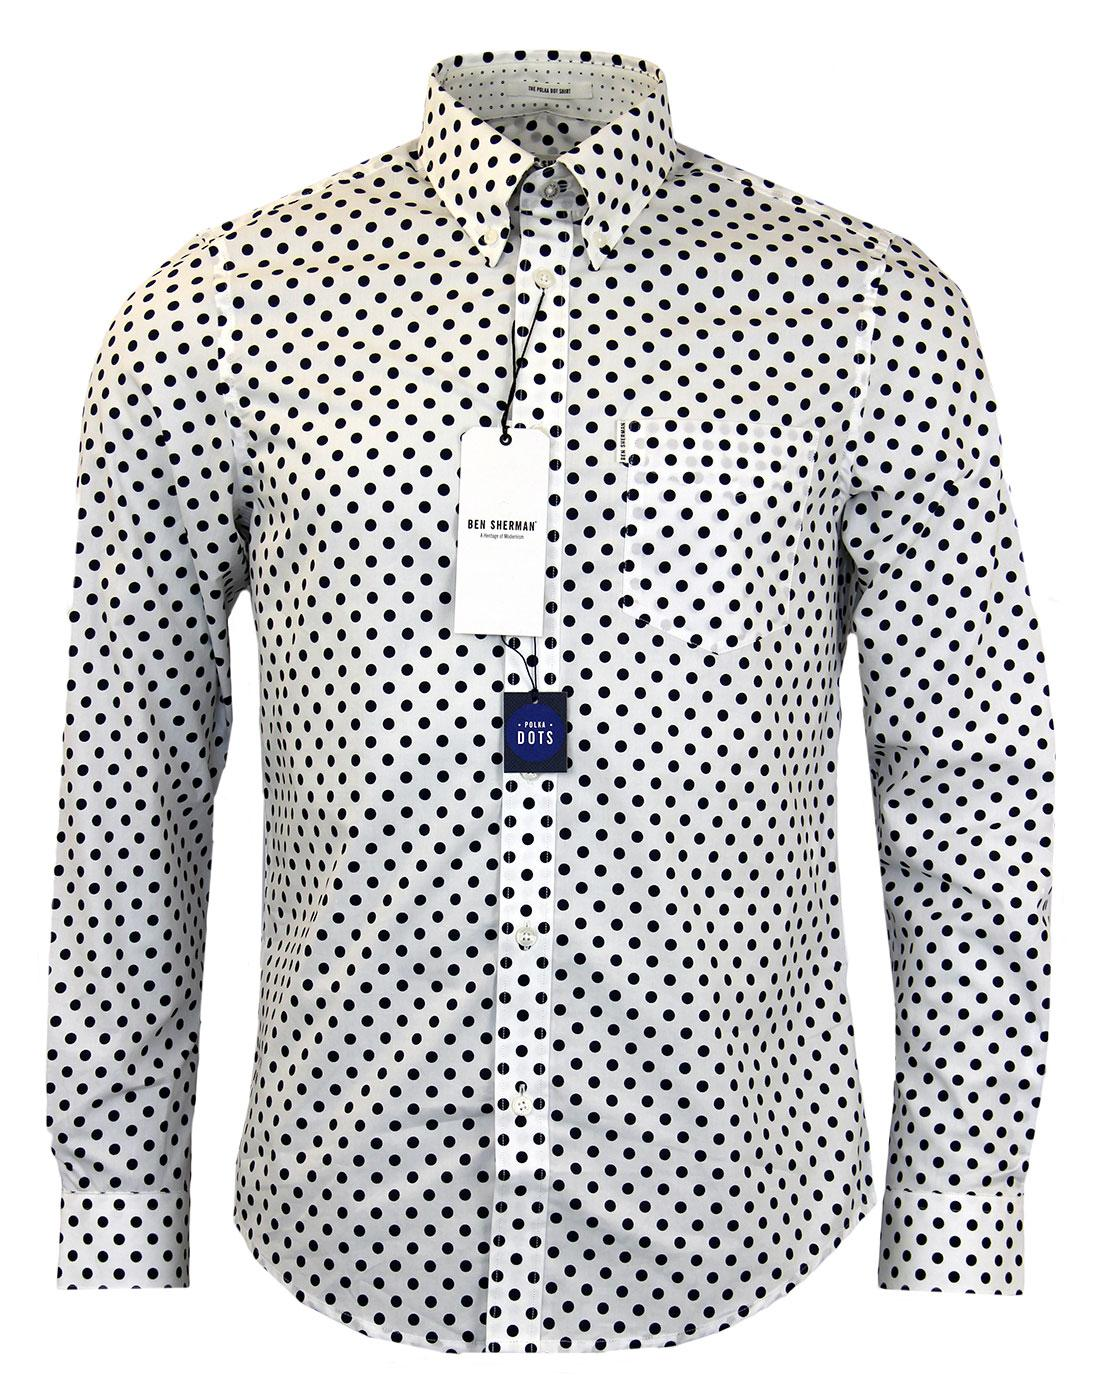 BEN SHERMAN 60s Mod Off White Polka Dot Shirt